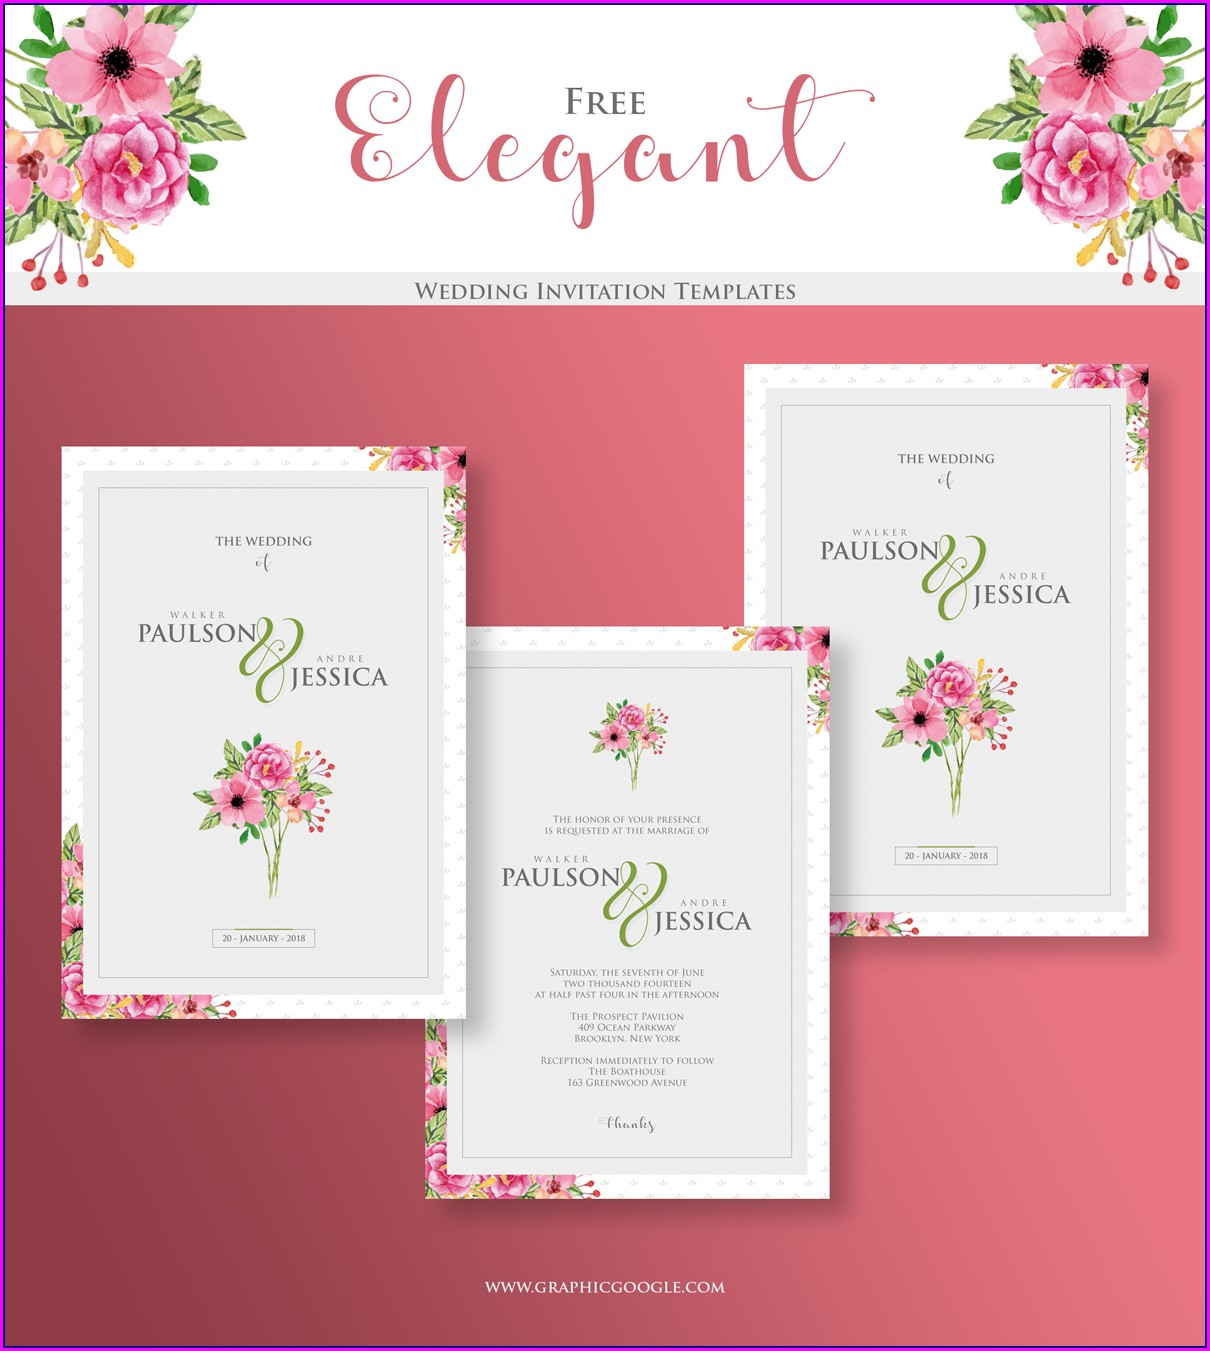 Elegant Wedding Invitation Templates Free